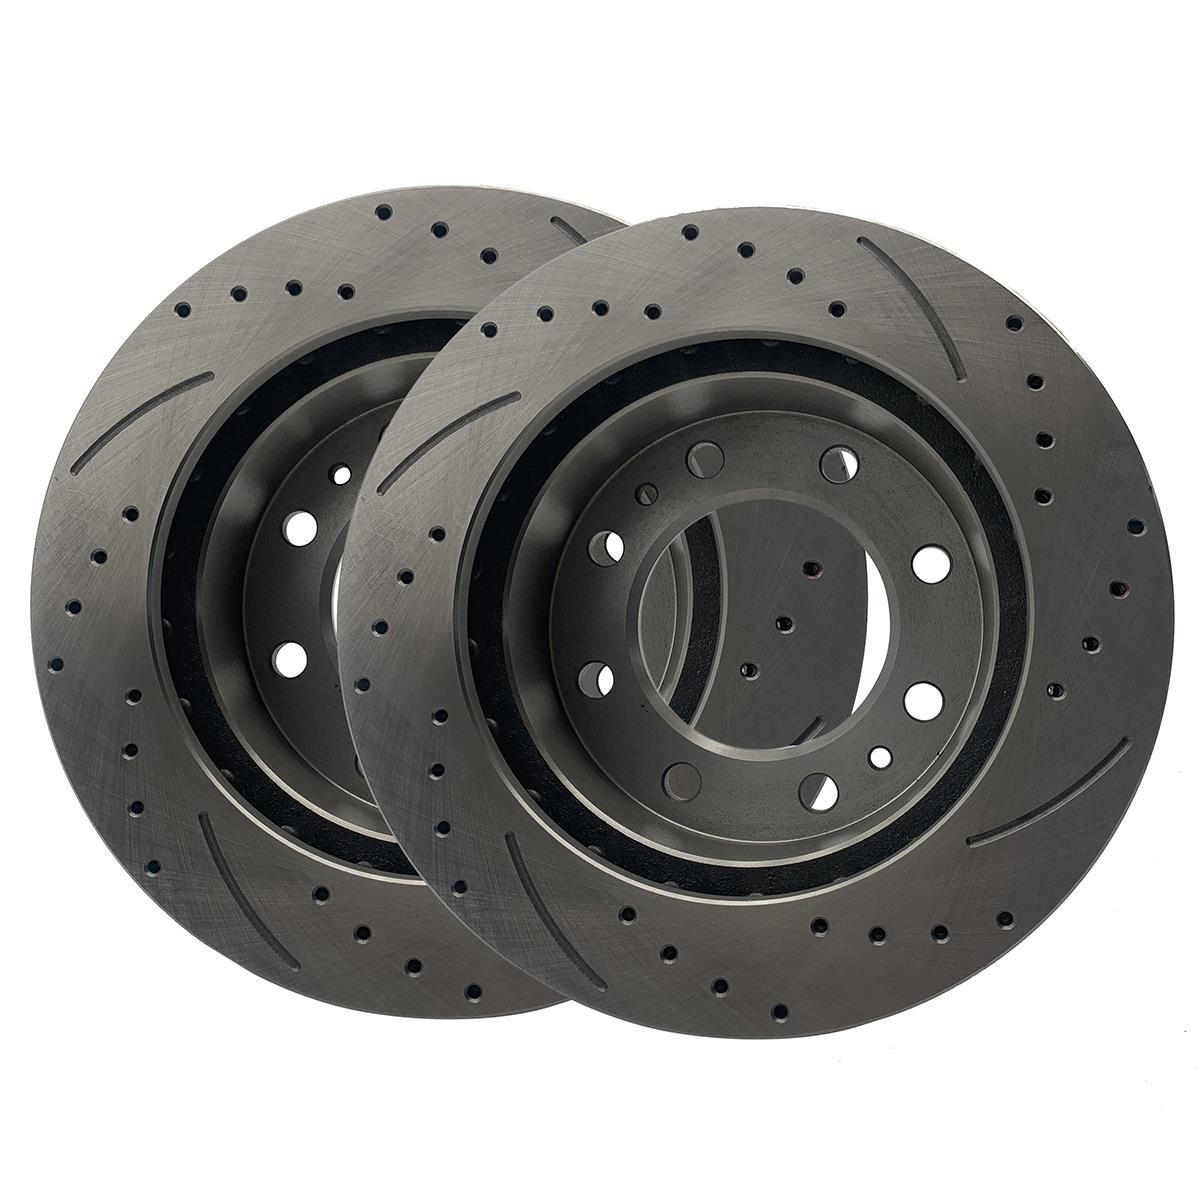 Front Rear Brake Rotors For Chevy Silverado Gmc Sierra